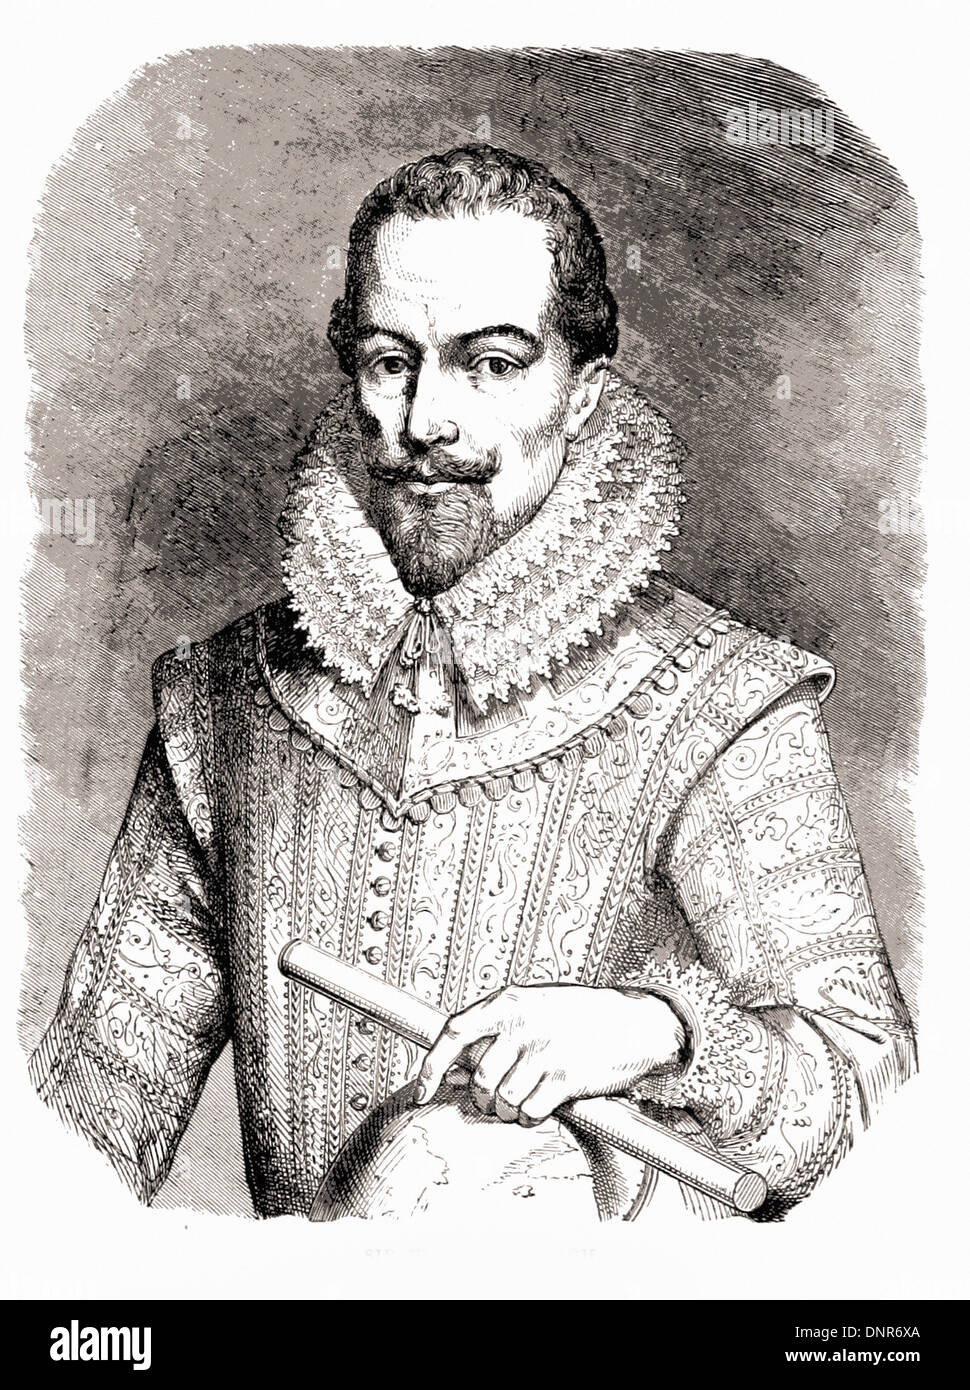 Portrait of Sir Walter RALEIGH - British engraving XIX th Century - Stock Image